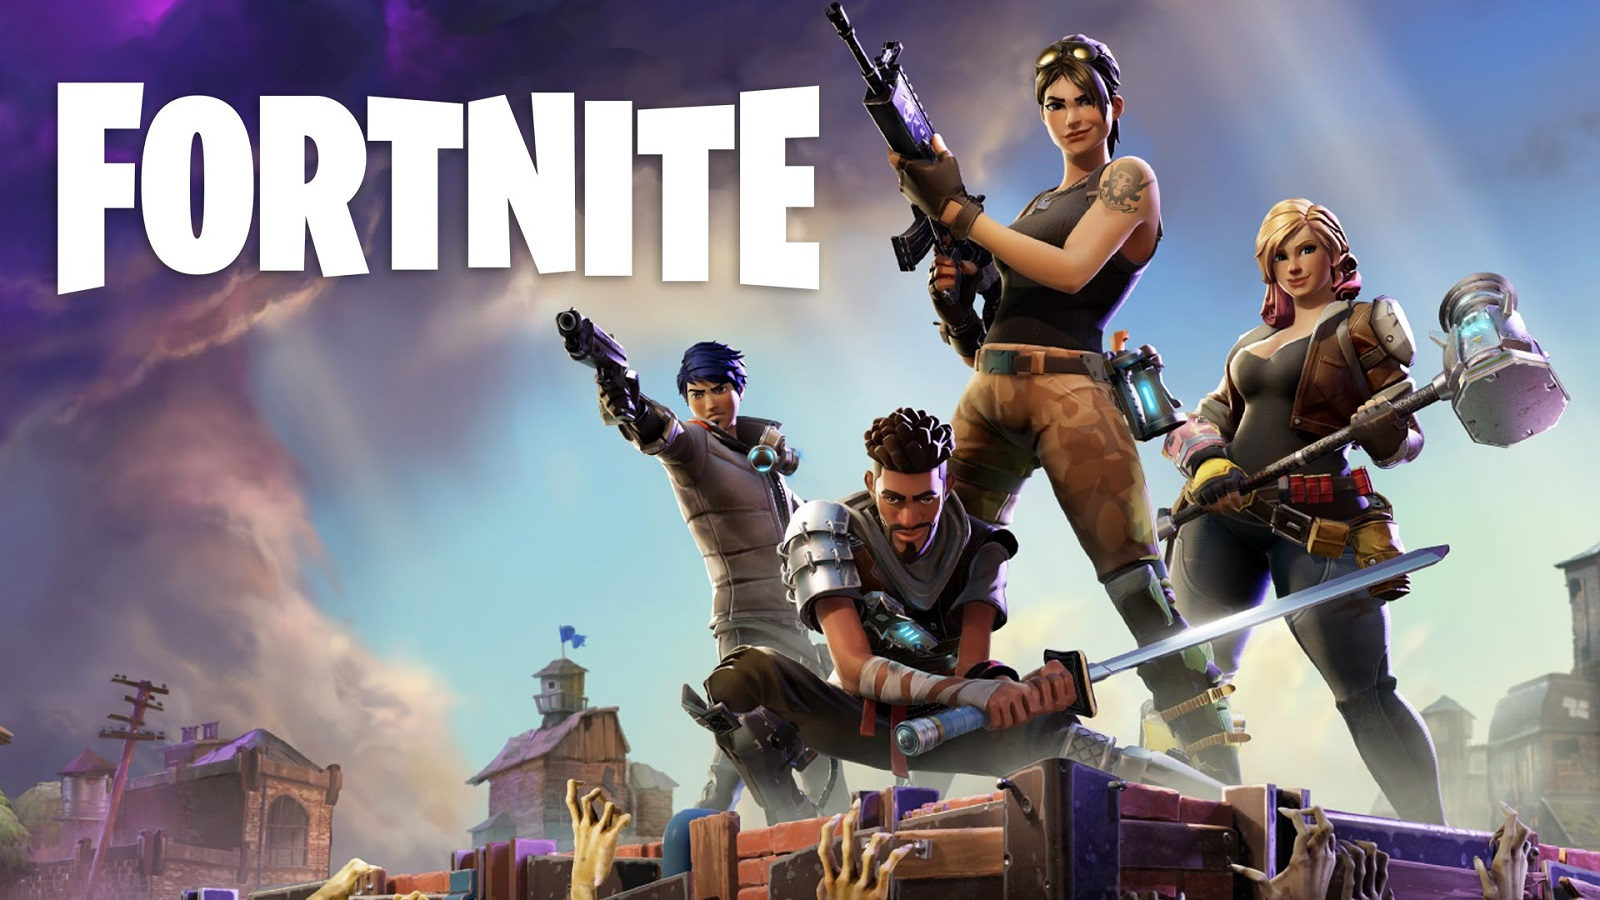 Fortnite advierte sobre estafas gratuitas de V-Bucks